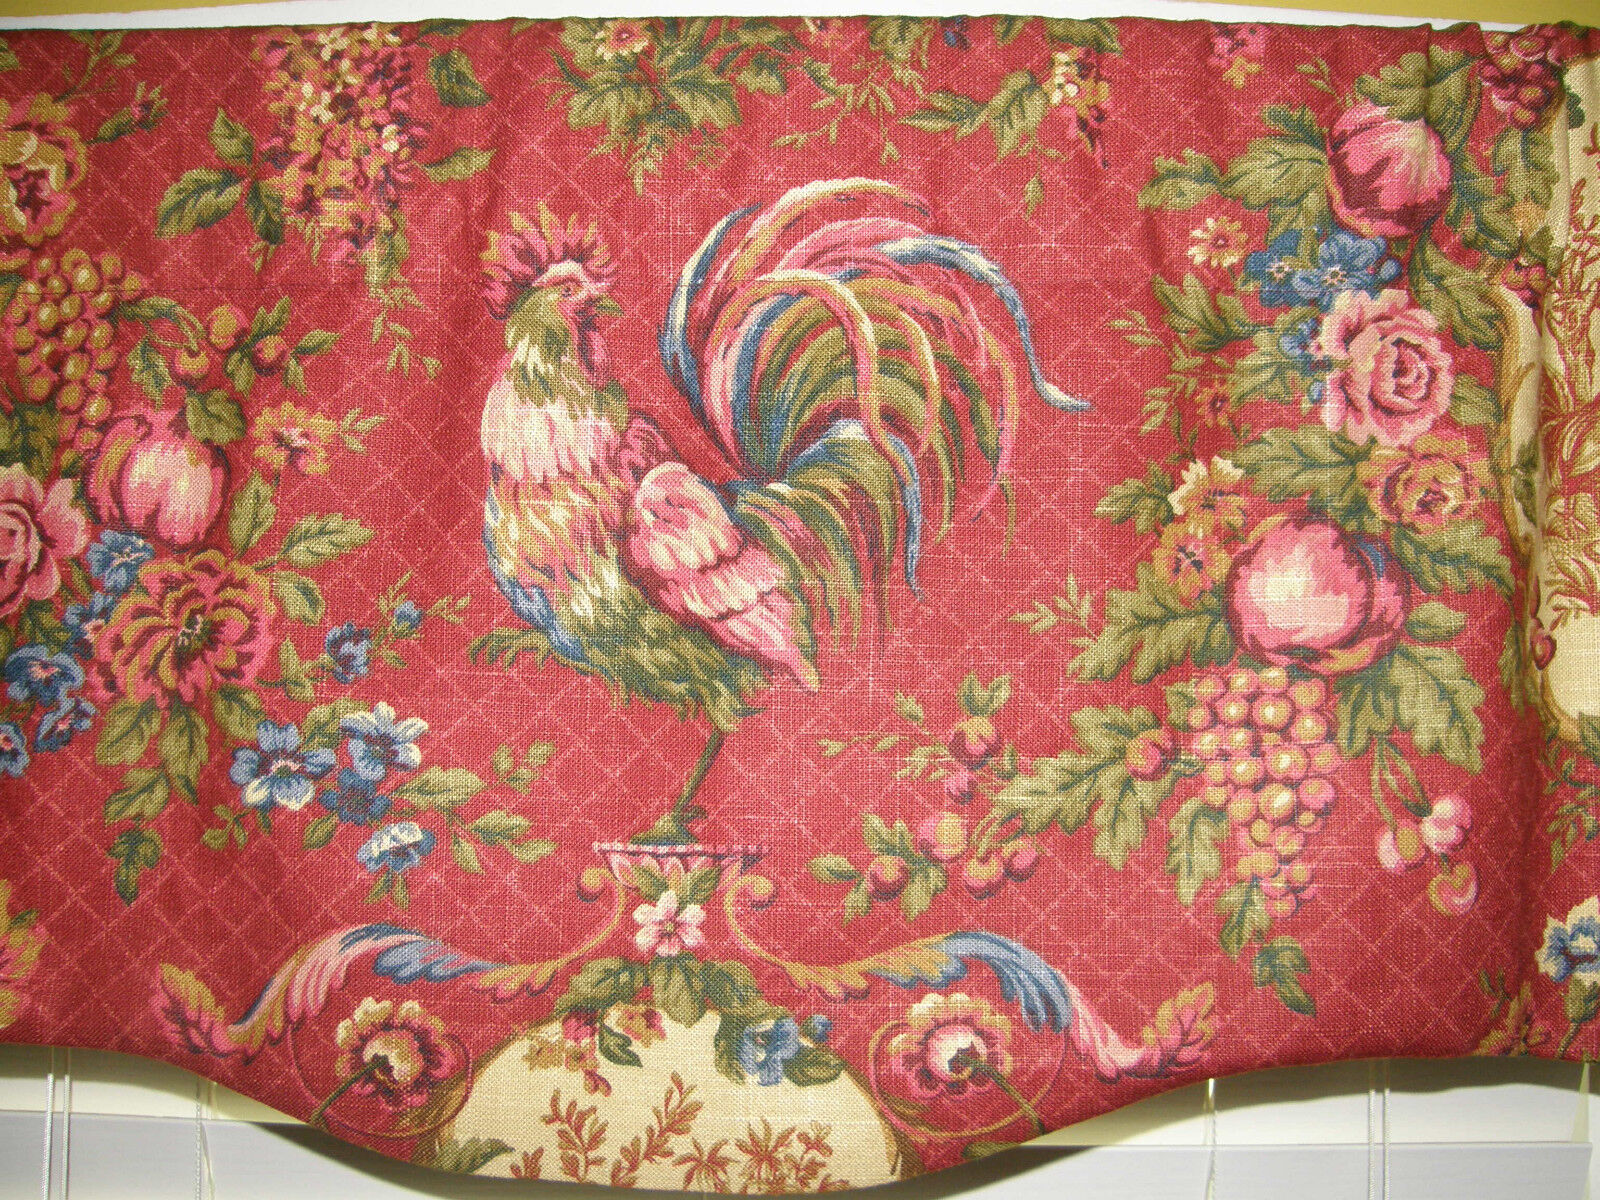 French country curtains waverly - French Country Scalloped Valance Curtain Waverly Red Gold